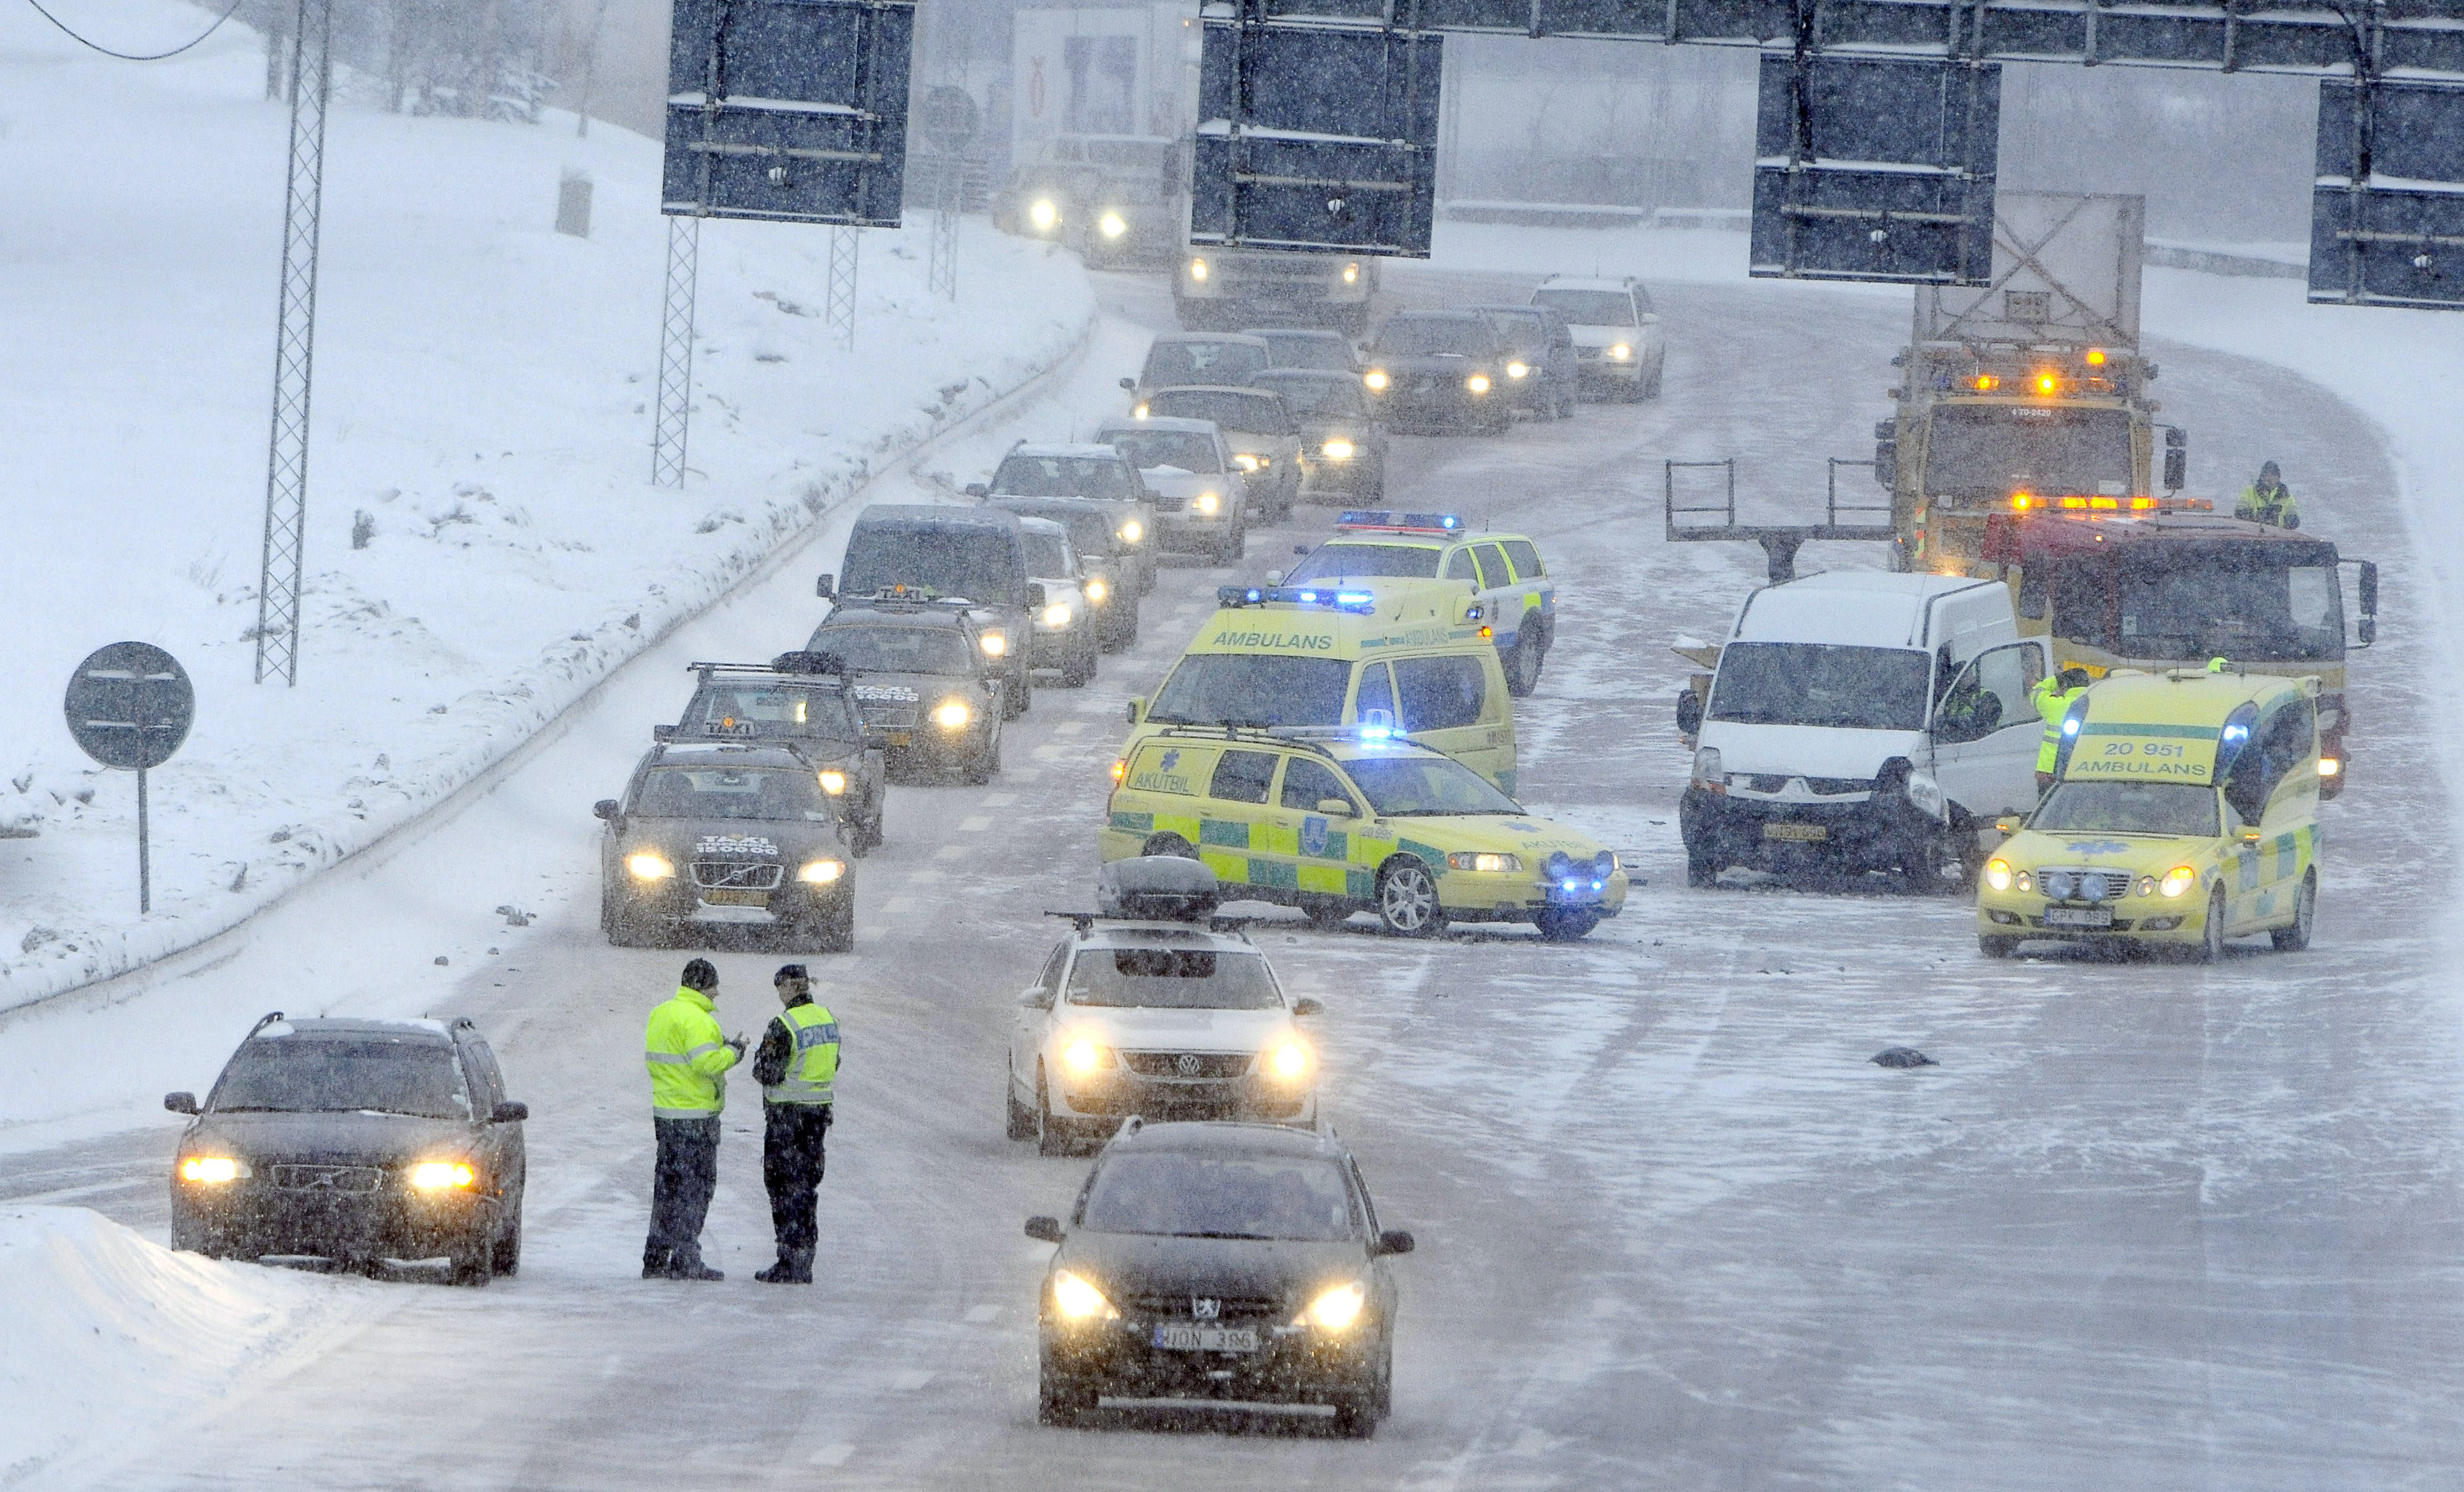 Most of Sweden's pollution is attributed to studded tires says a Swedish Radio News report. (Johan Nilsson / SCANPIX / AFP)